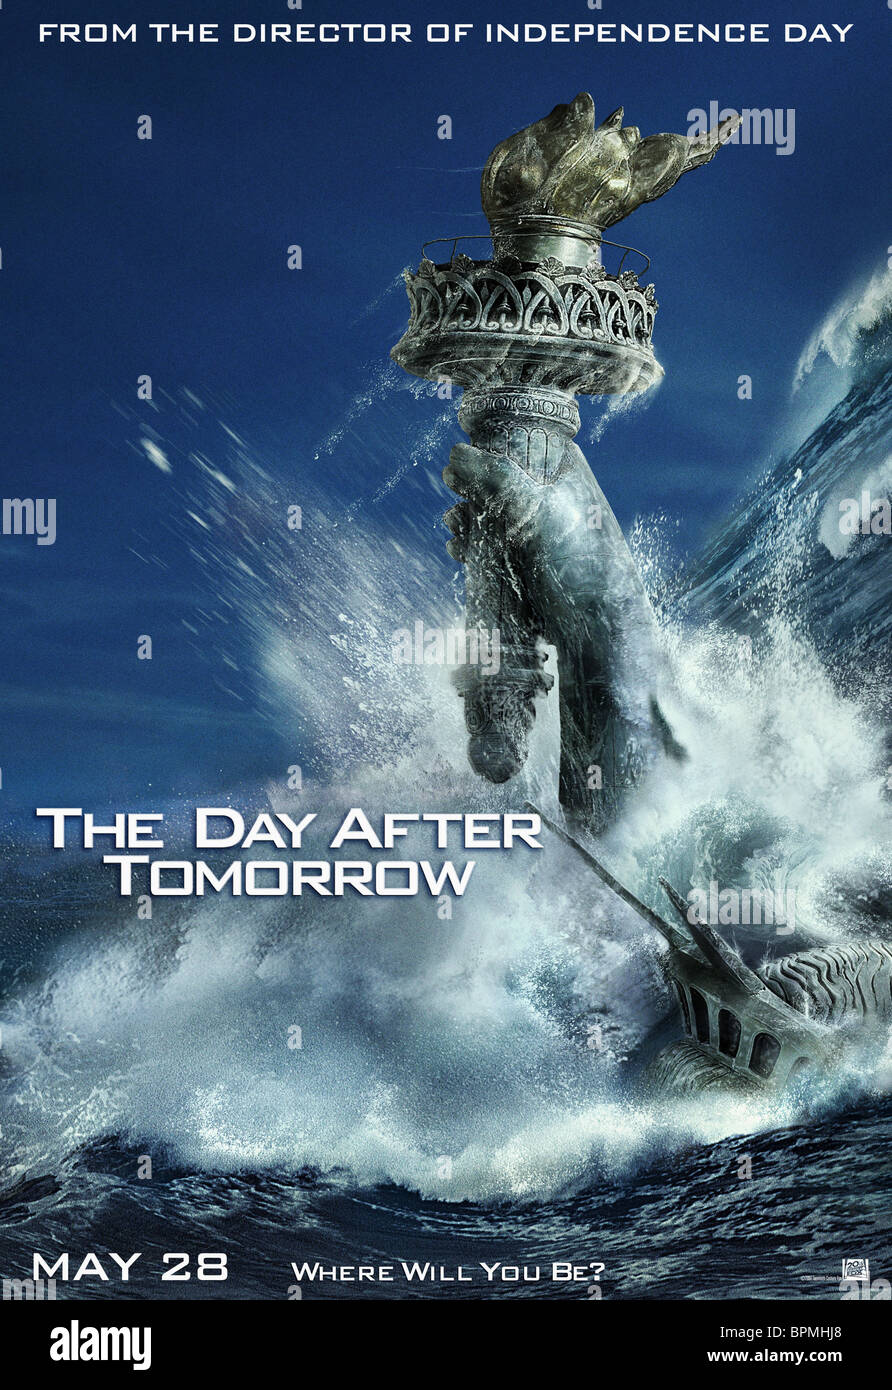 an analysis of the movie the day after tomorrow The day after tomorrow hang tight loading your video just the jokes it's time to watch the end of the world, which is our fault of course, as rifftrax presents bill corbett and kevin murphy's razor-sharp political analysis of the day after tomorrow - which, by my reckoning, at least for today, may.